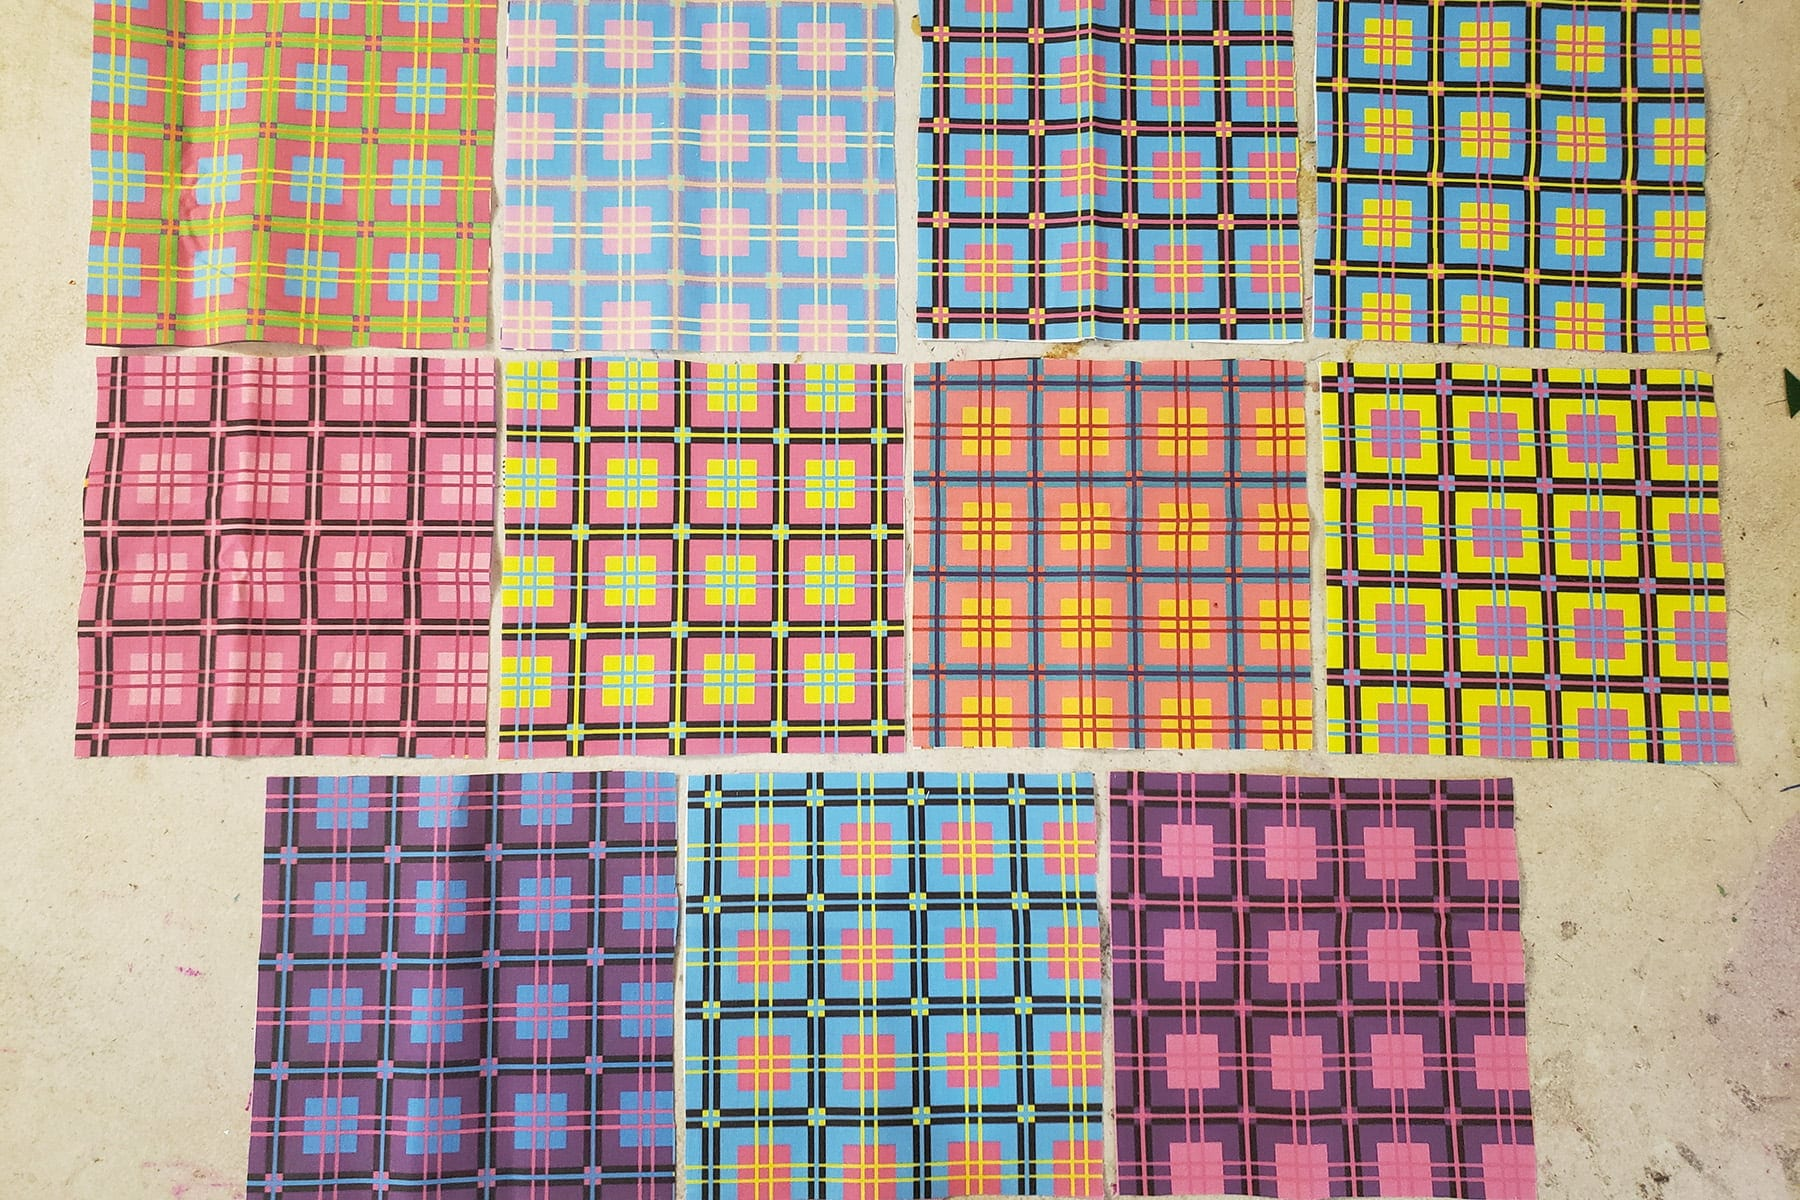 Photo of a selection of fabrics featuring a variety of colourful plaid designs.